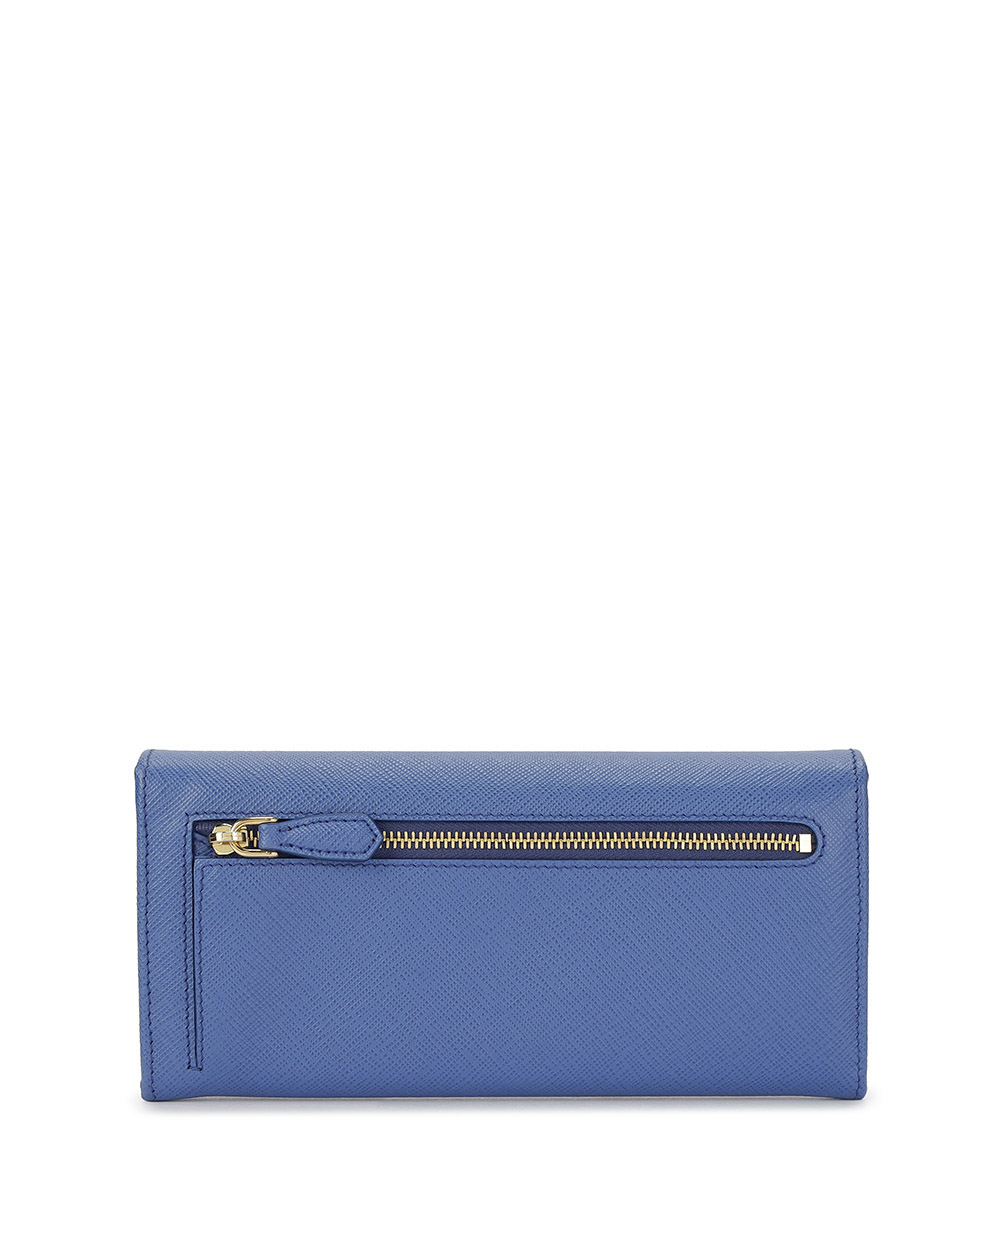 Saffiano Leather Wallet 2